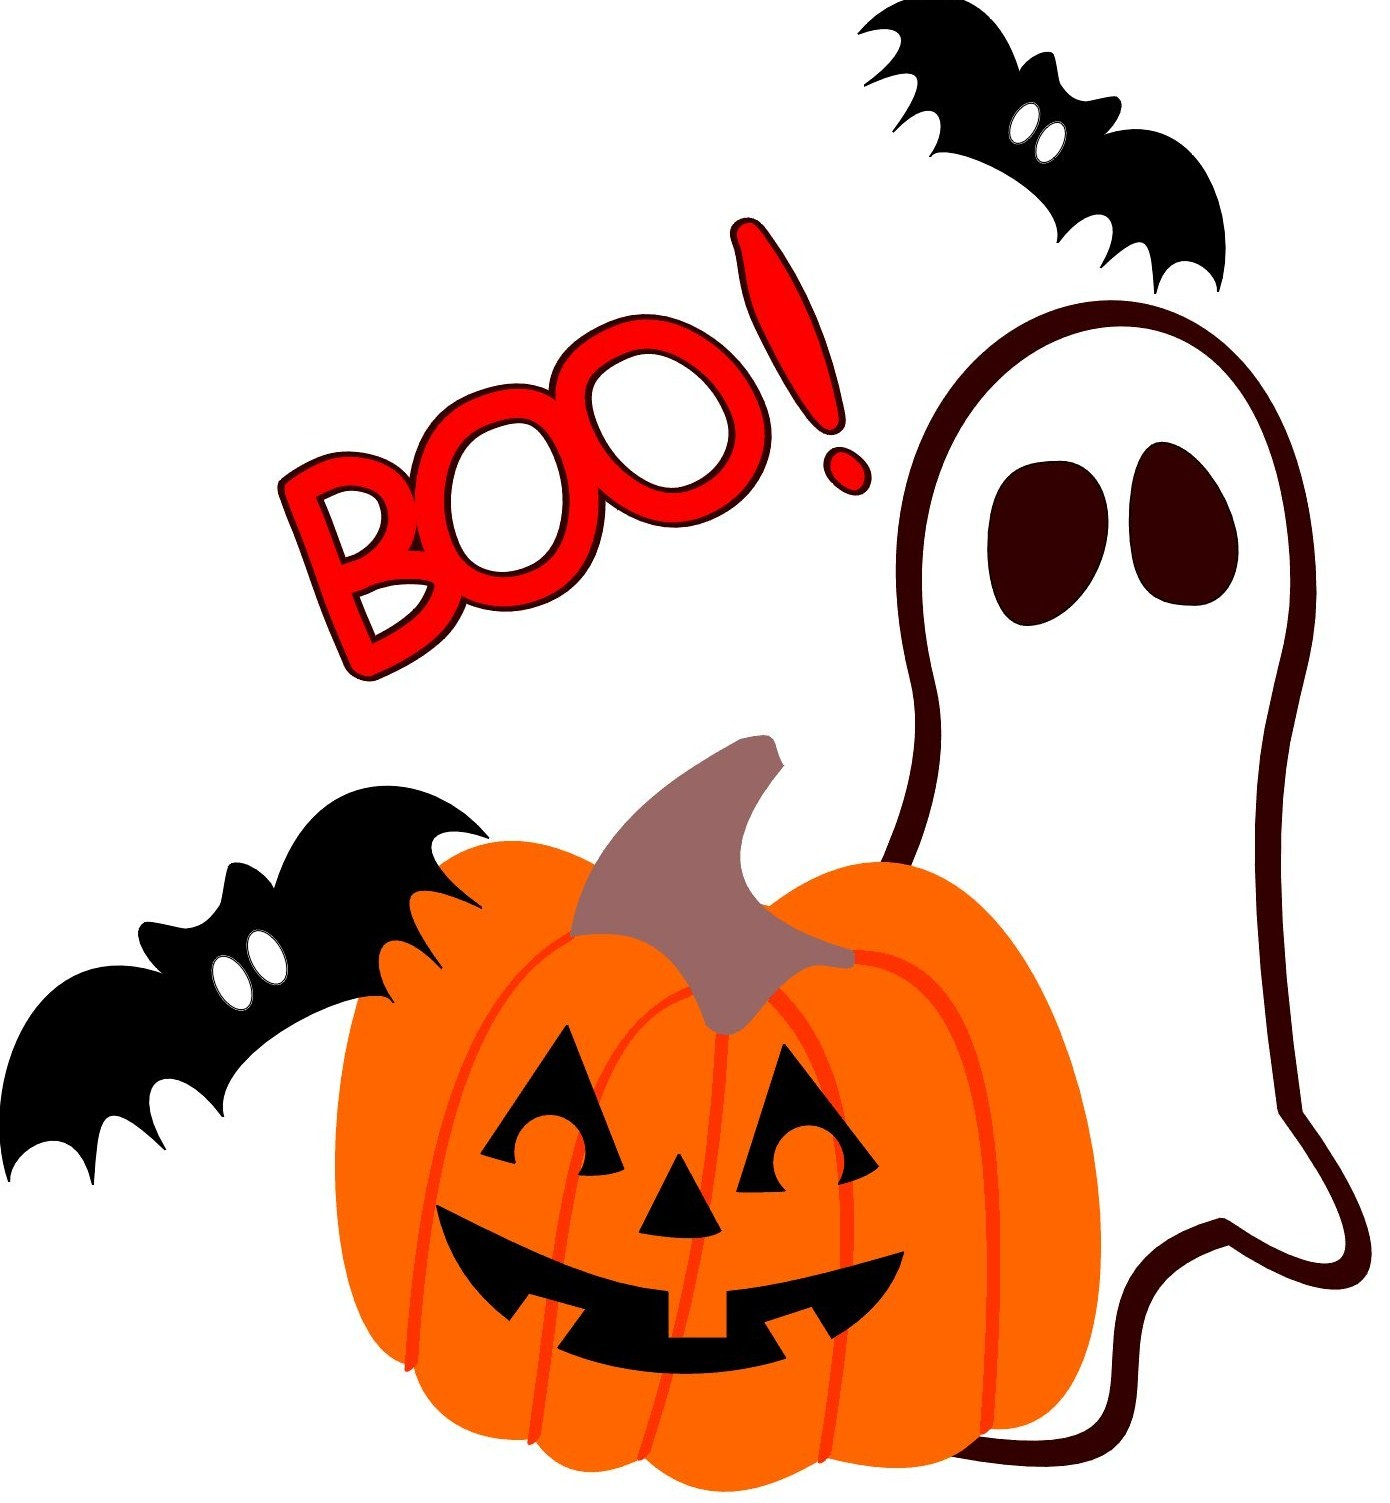 School Halloween Costume Parade Clipart.